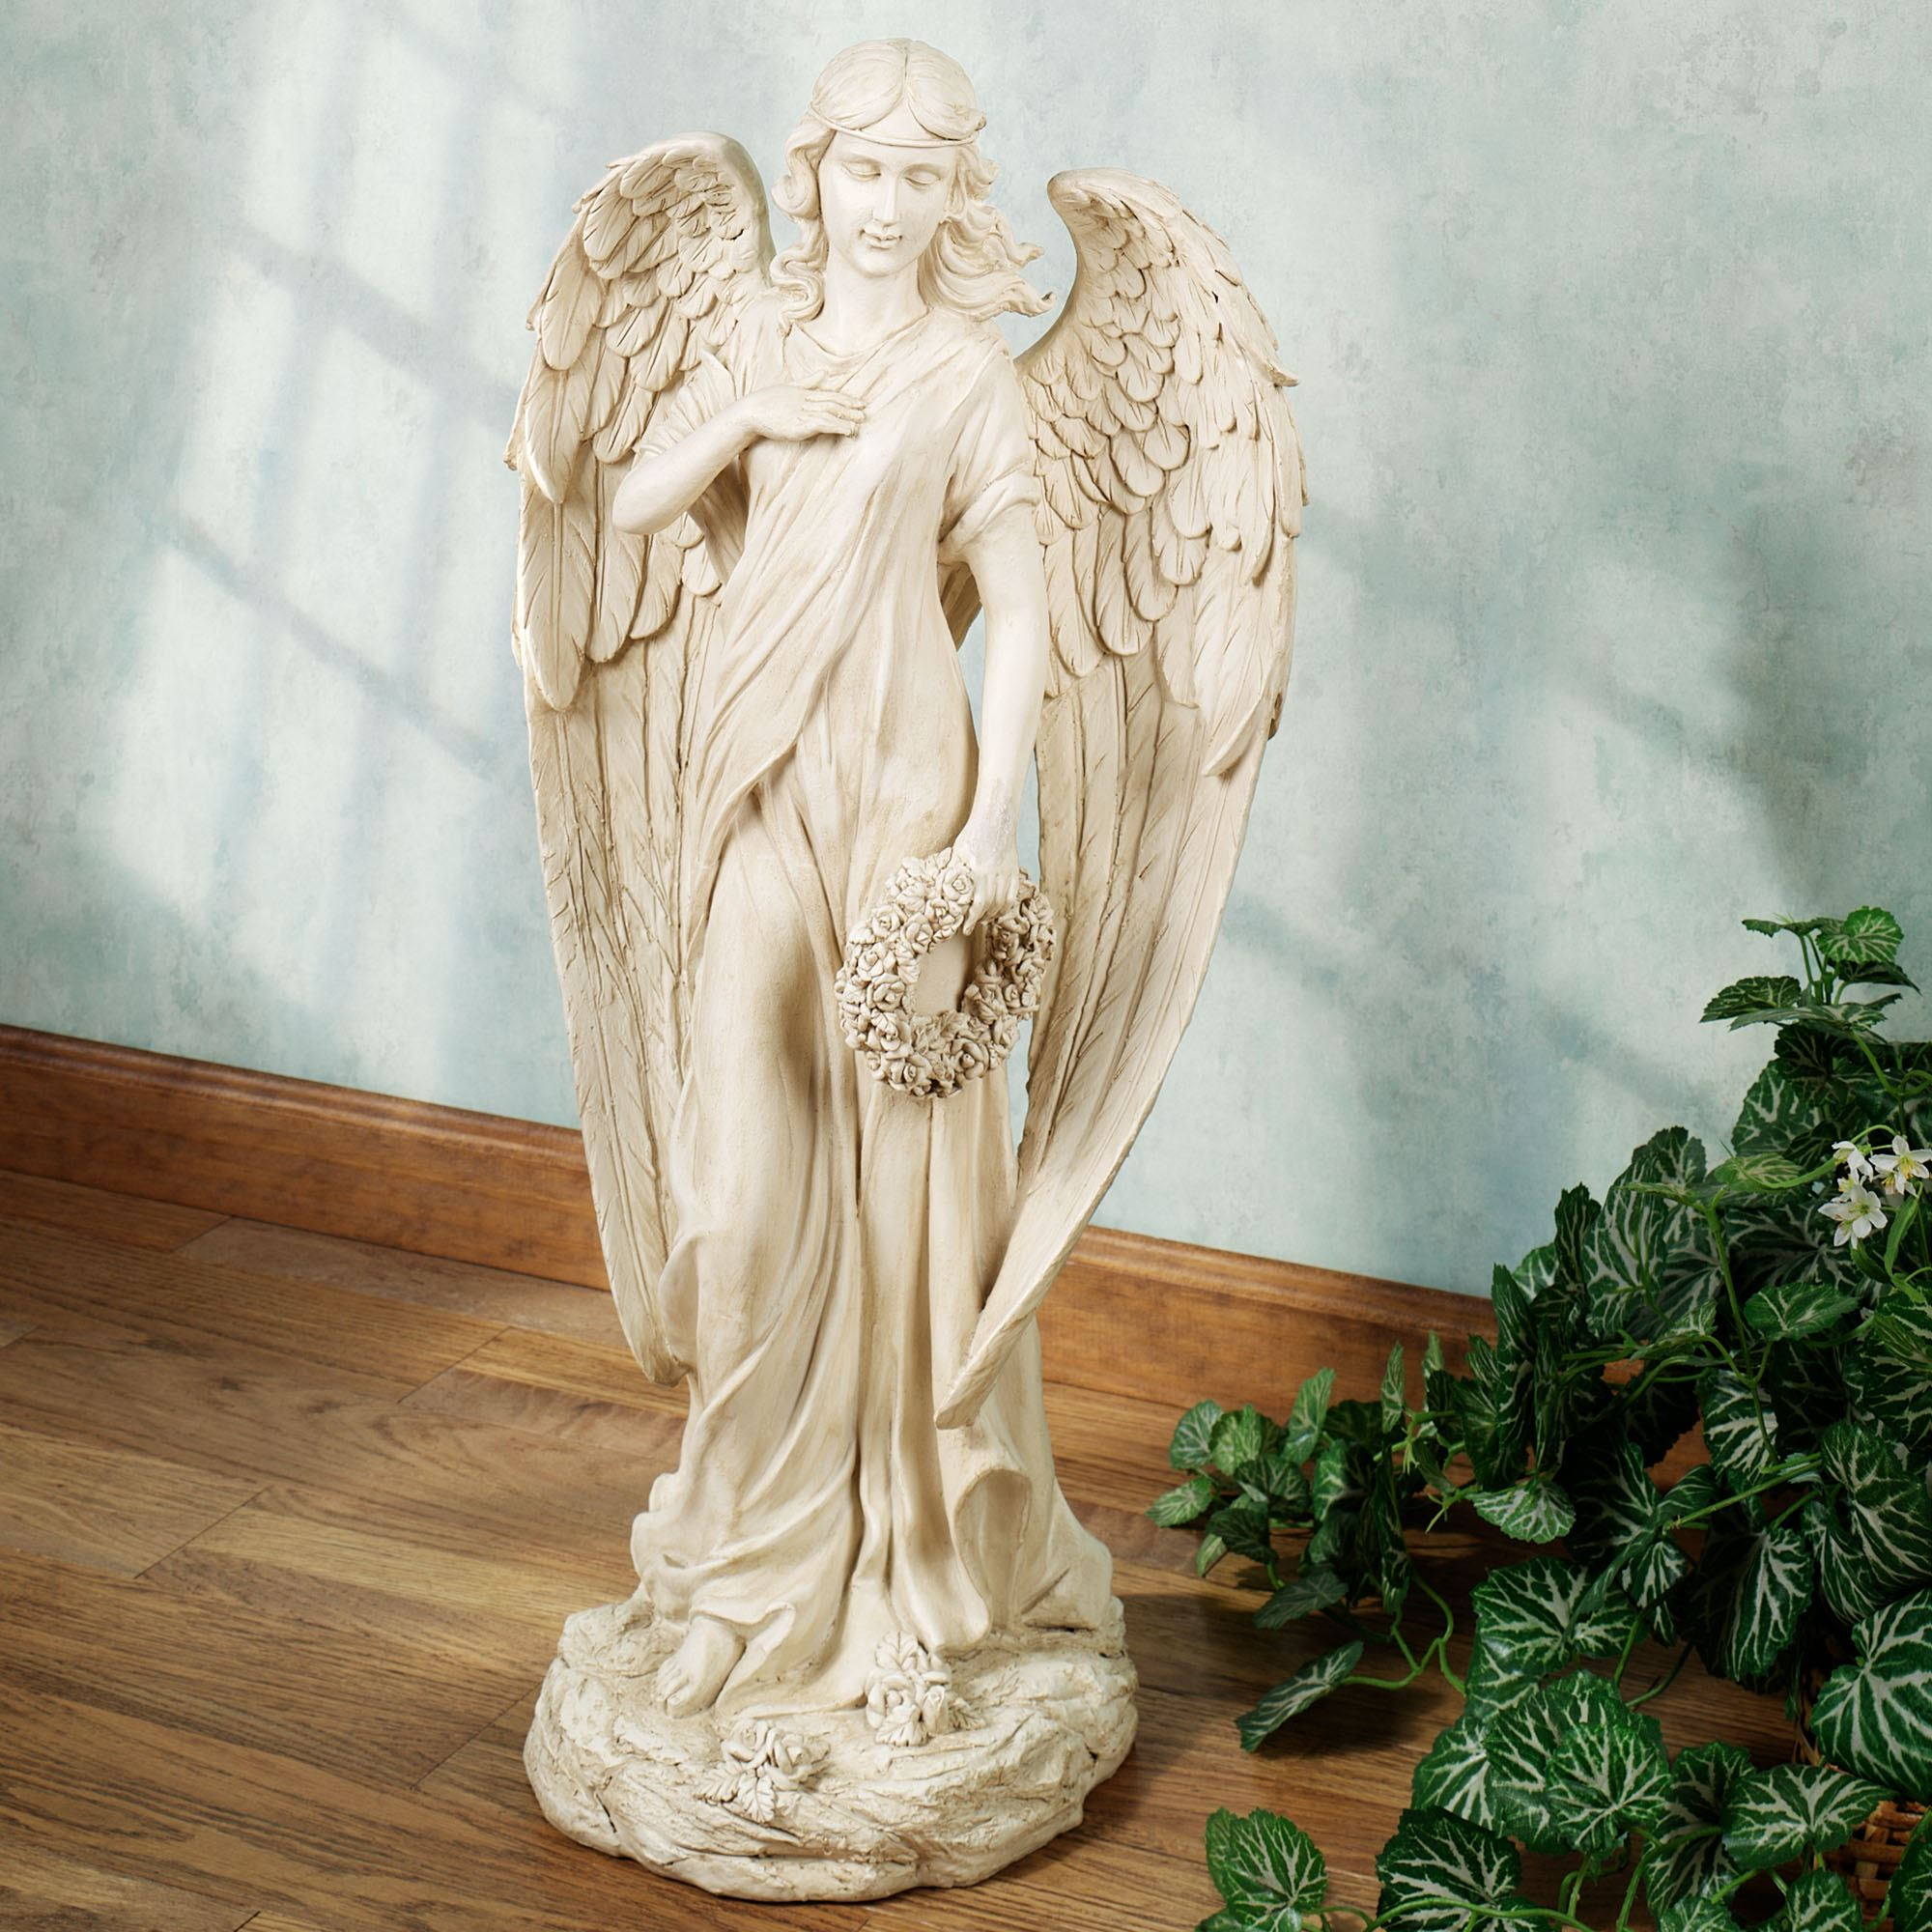 Finest Garden Statues of Angels - Indoor and Outdoor Religious Statuary.